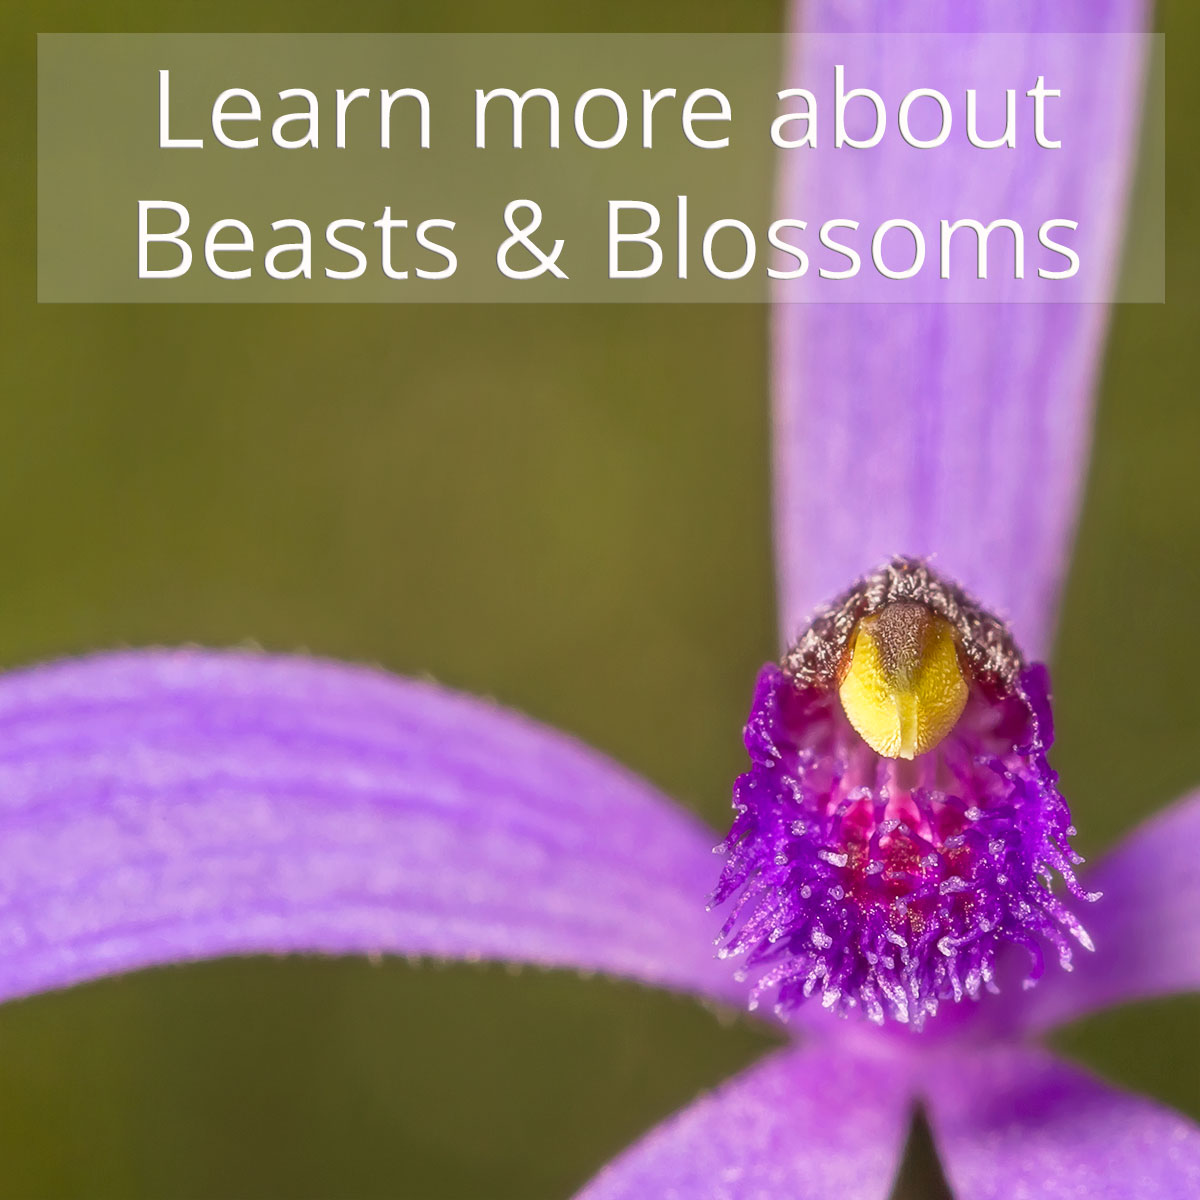 Learn more about Beasts & Blossoms (image: blue fairy orchid, Pheladenia deformis)